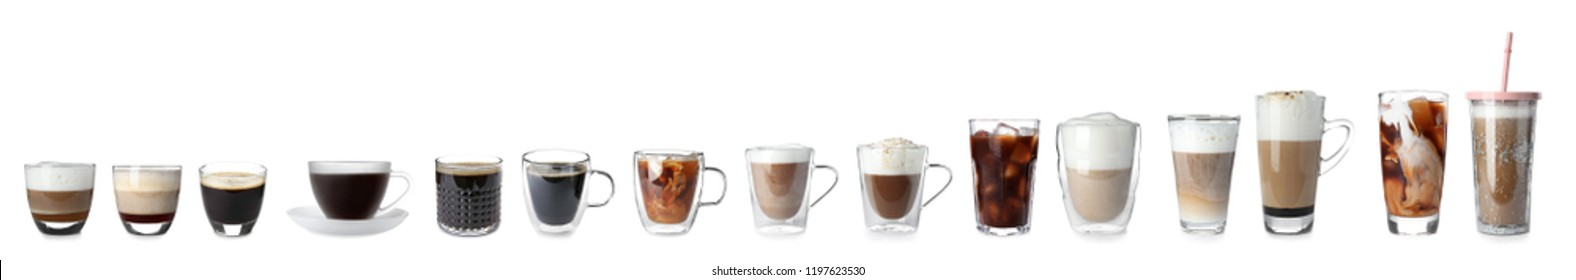 Set with different types of coffee drinks on white background